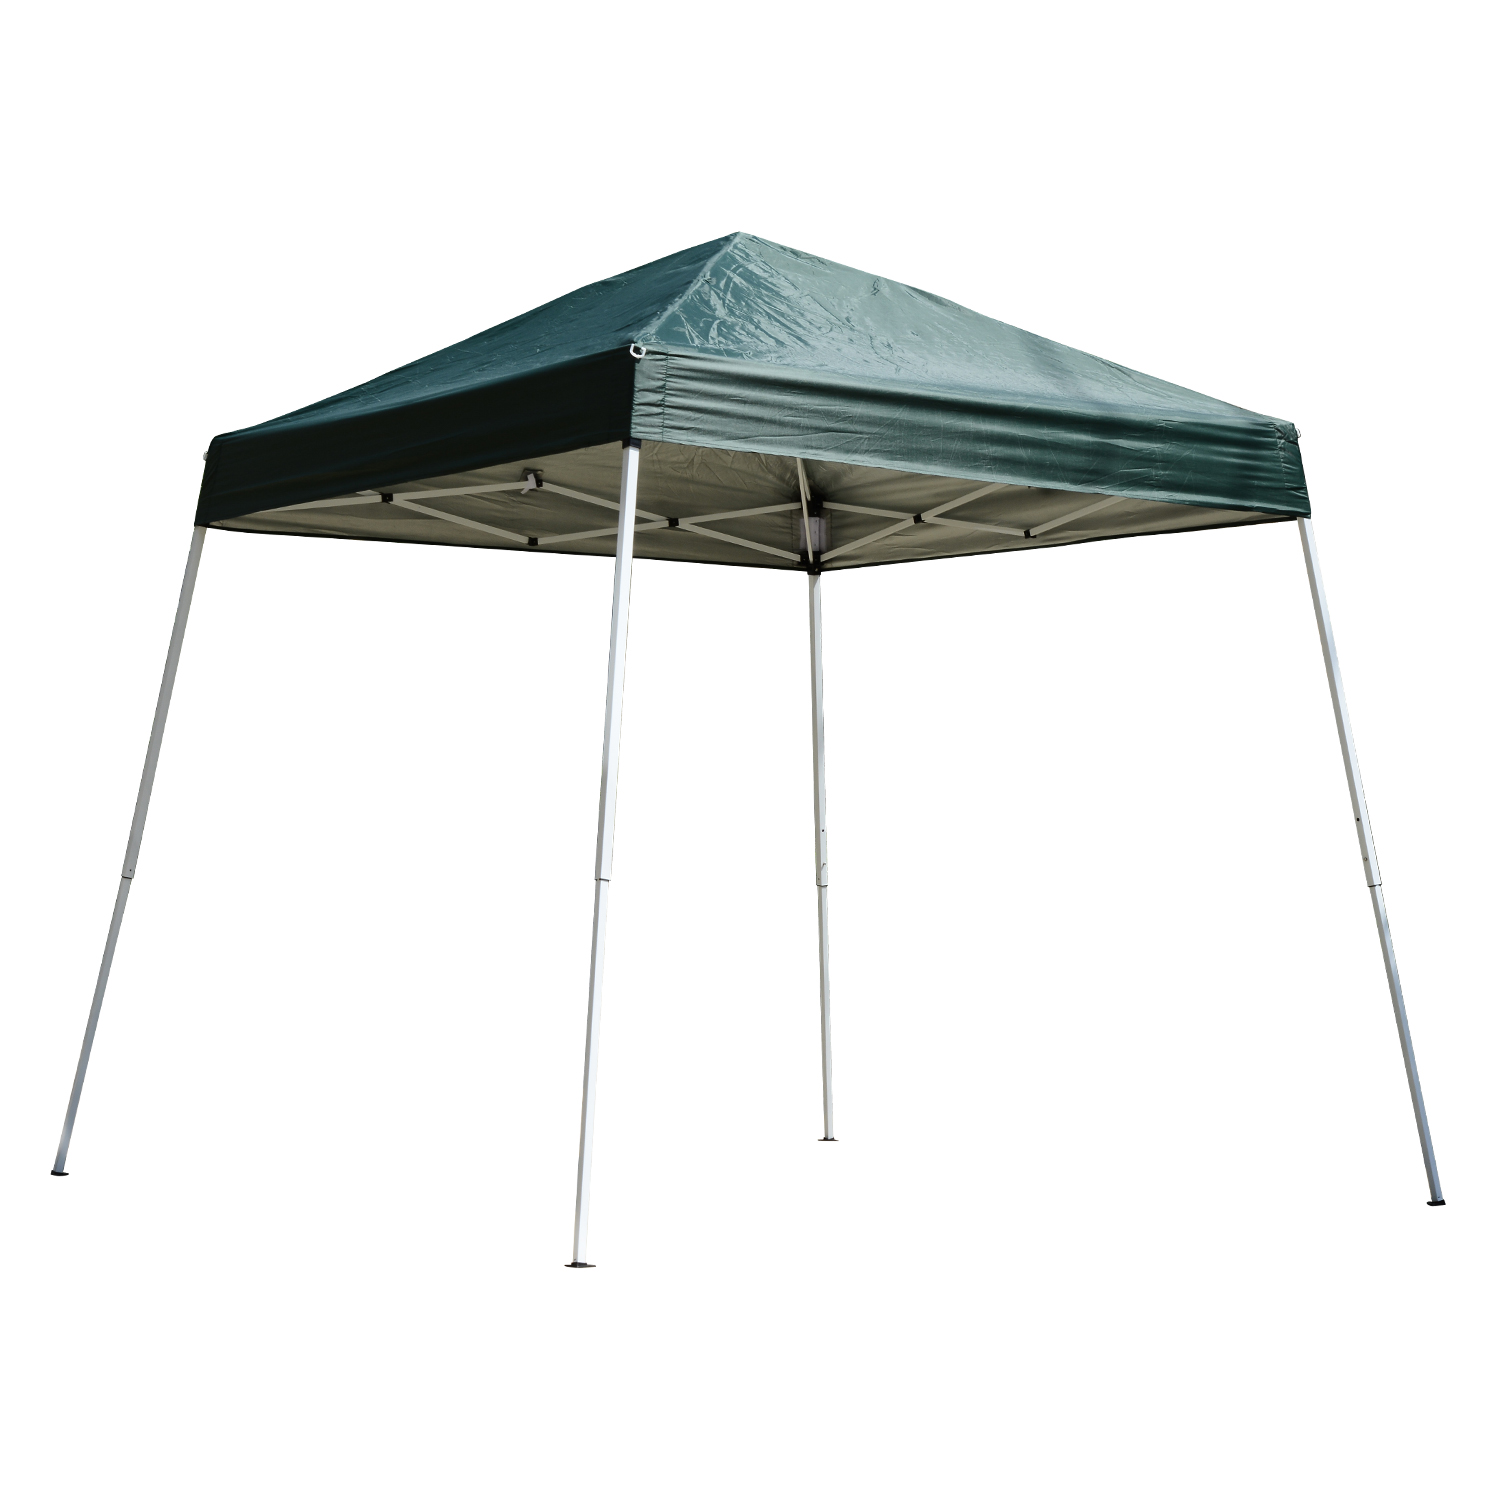 Outsunny 8' x 8' Slant Leg Pop Up Canopy Tent - Green